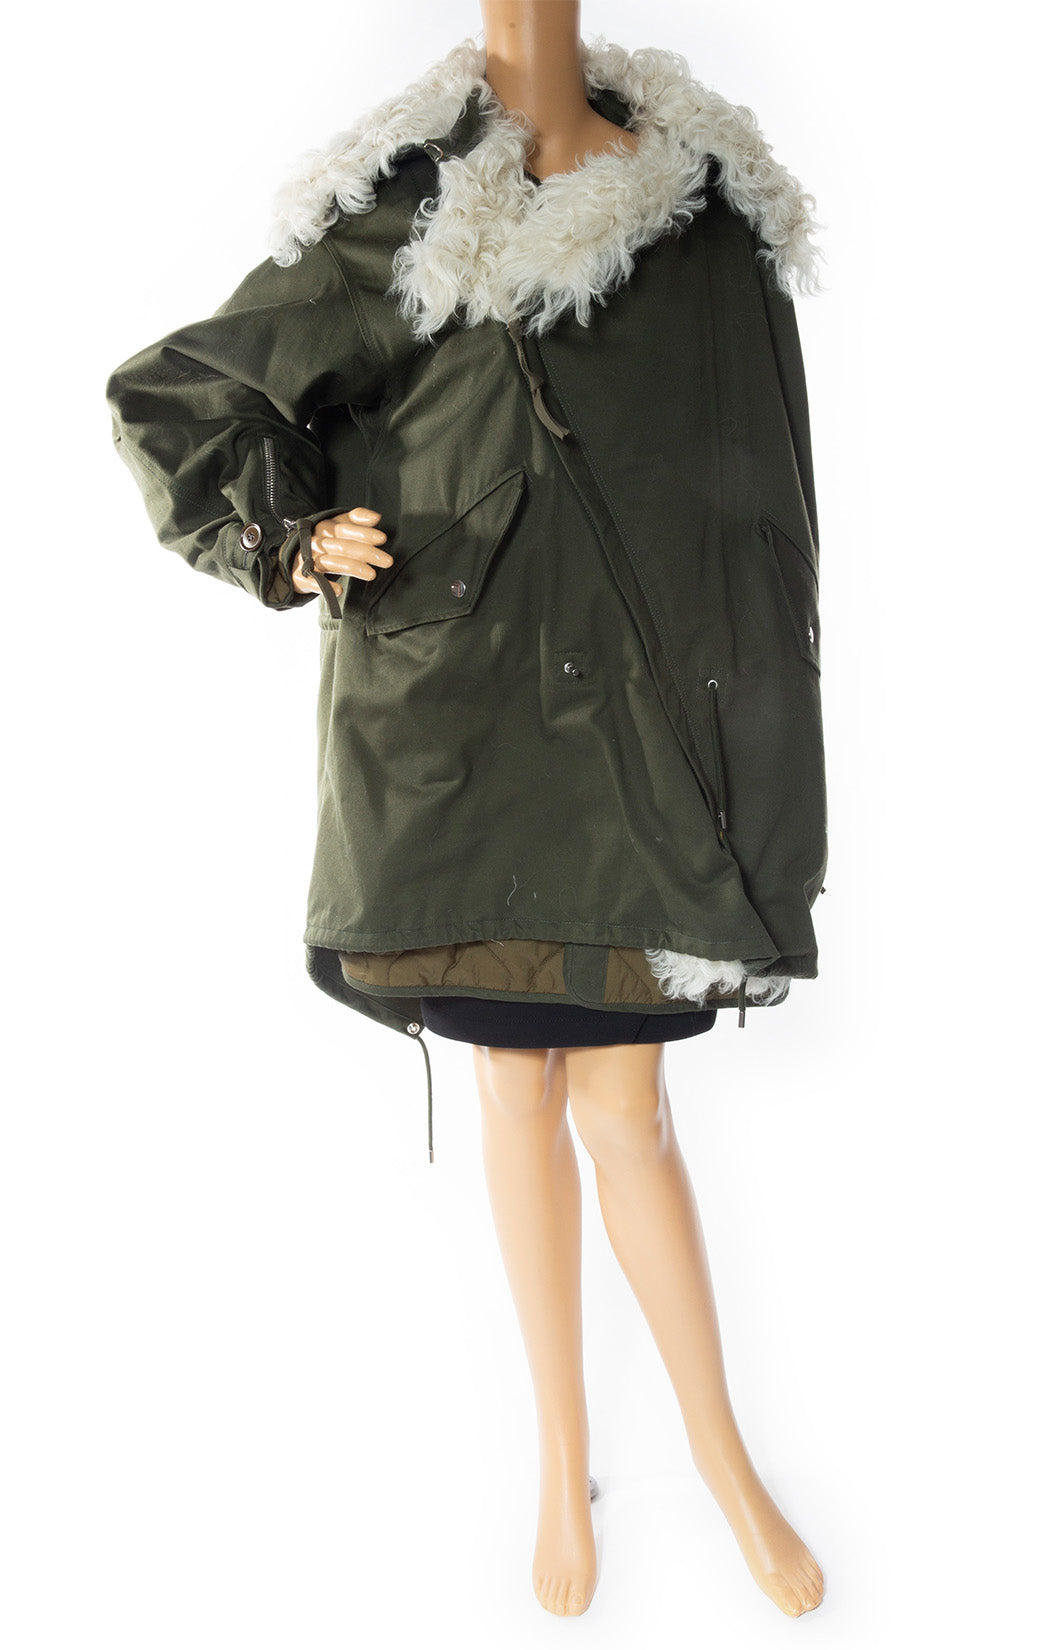 Front view of BALENCIAGA Oversized Jacket with Tags Size: FR 36 (US 2-4)